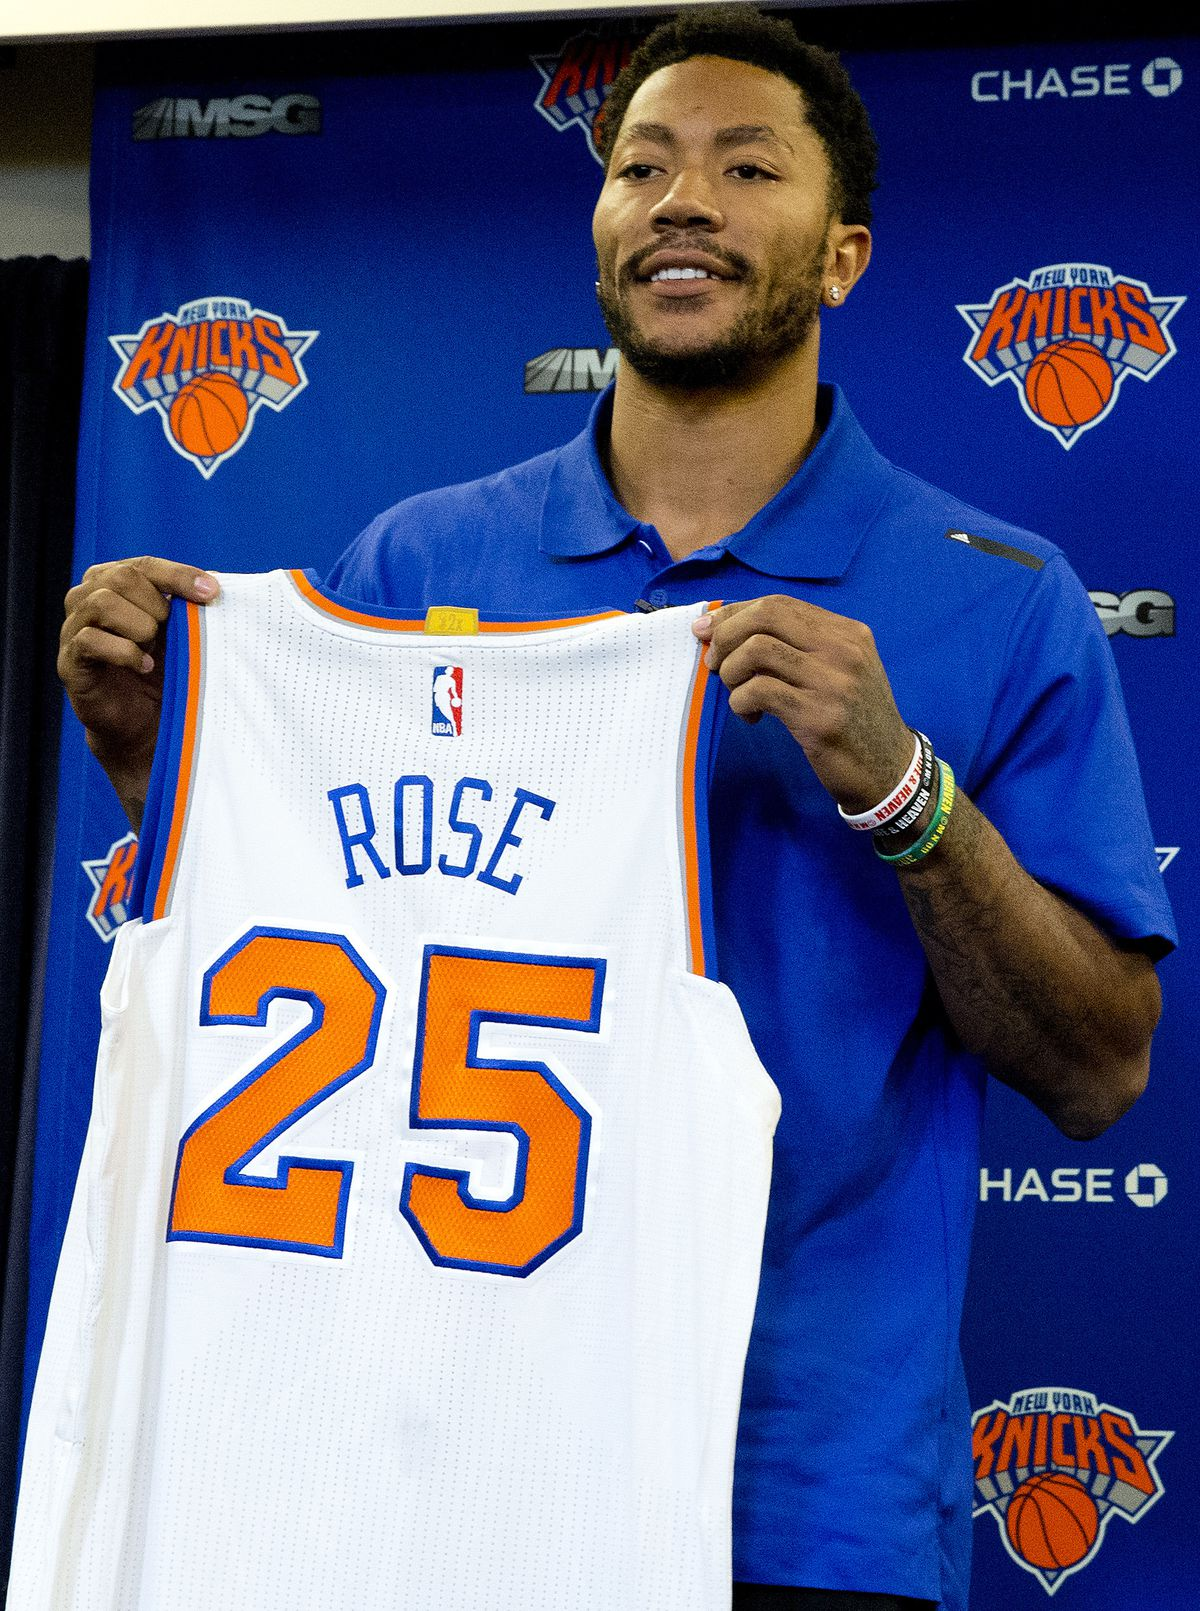 Derrick Rose poses for photographers with his New York Knicks jersey during a news conference on June 24, 2016 in New York. The Knicks introduced Rose, the former NBA basketball MVP they acquired from the Chicago Bulls. | Mary Altaffer/Associated Press